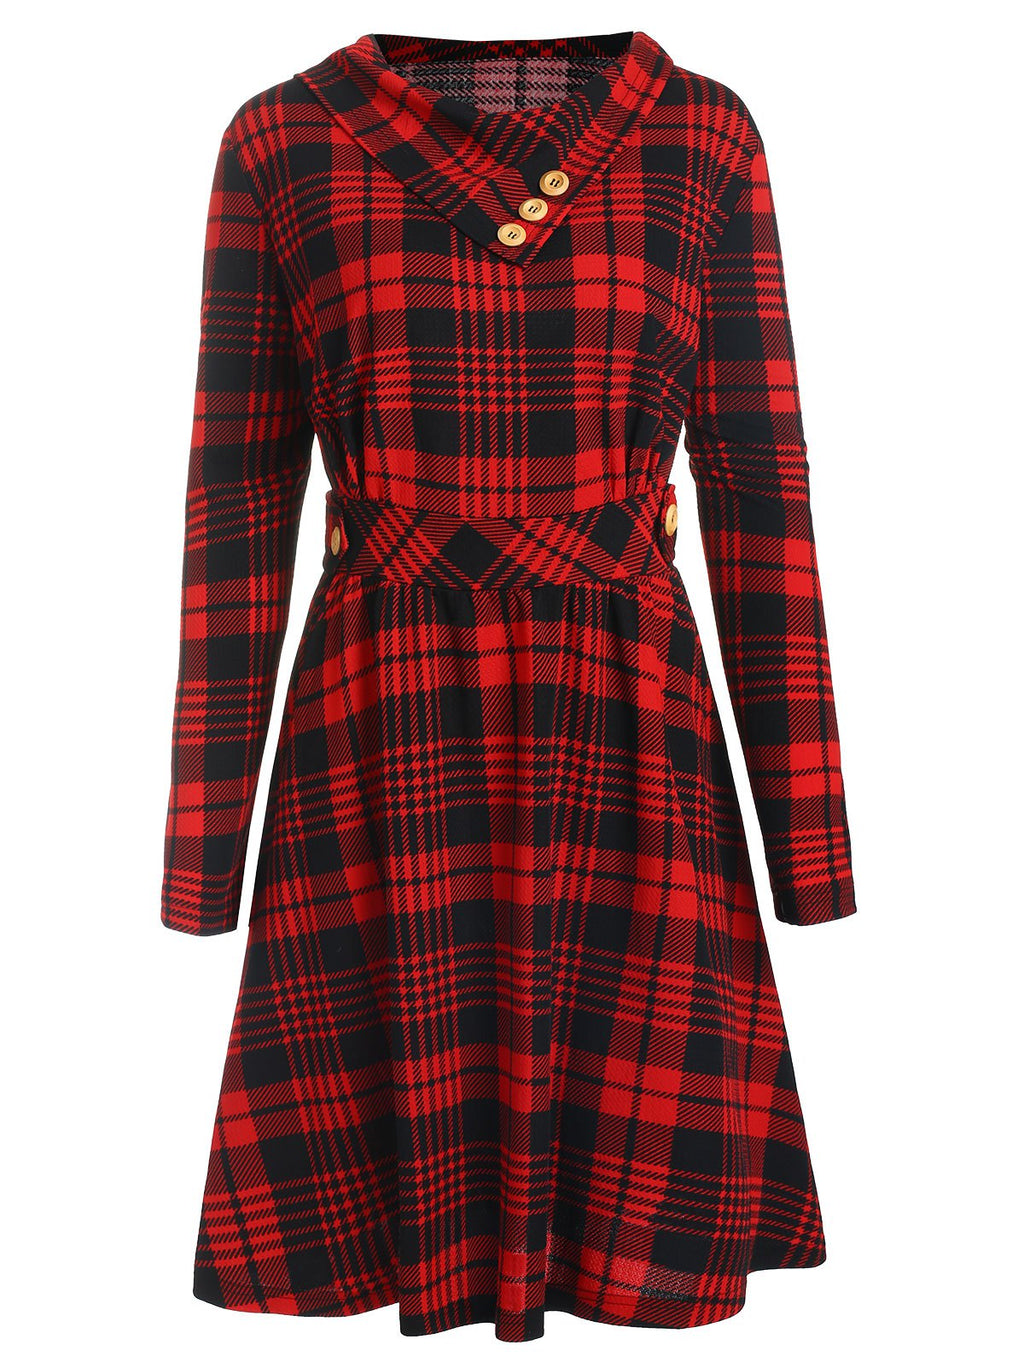 Plus Size Long Sleeves Plaid Flare Dress with Buttons